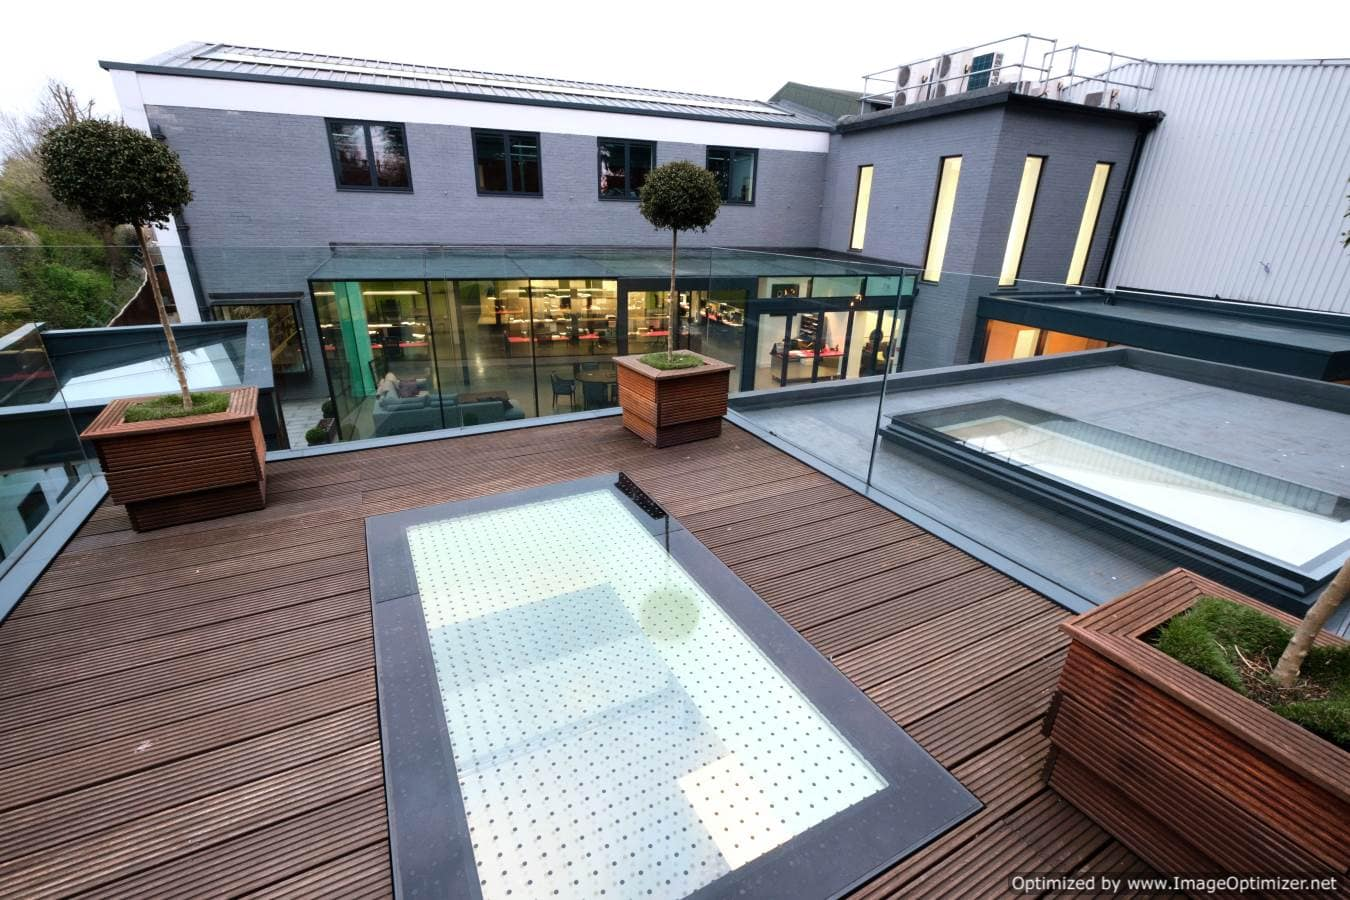 IQ Glass showroom with glass rooflights and structural glass box extension